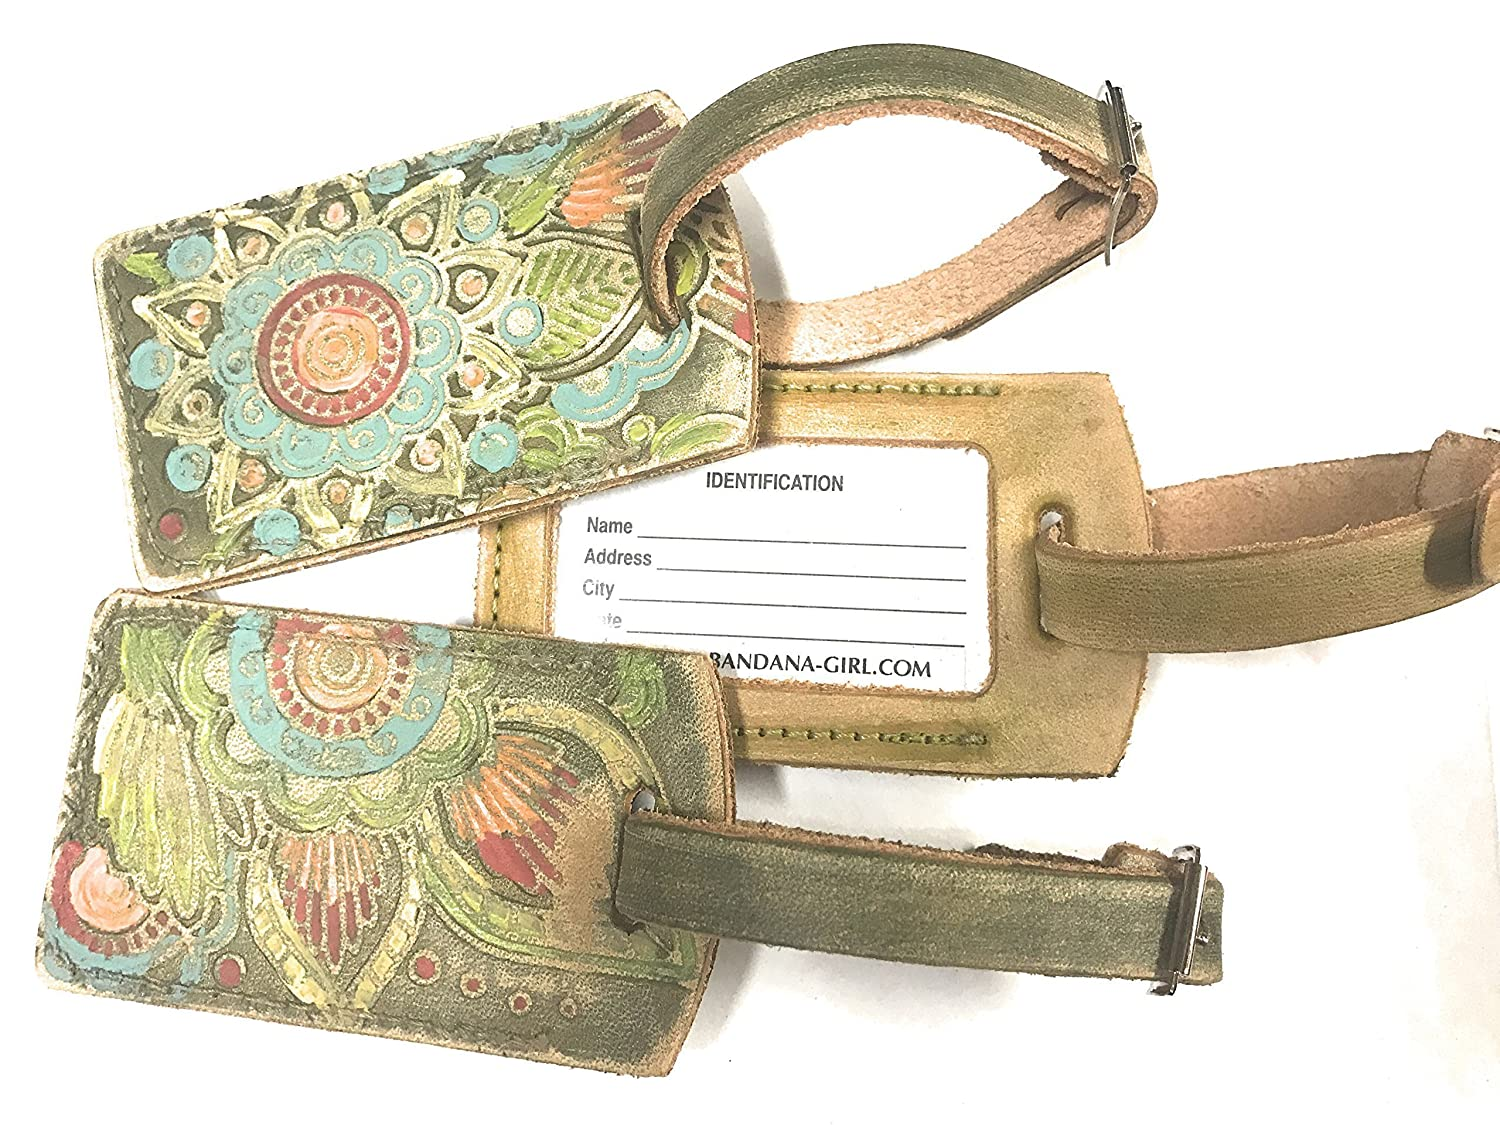 You choose the color Handpainted Rustic Leather Luggage Tag in Mandala or Flora Leaf Style with Name Plate Bag Tag